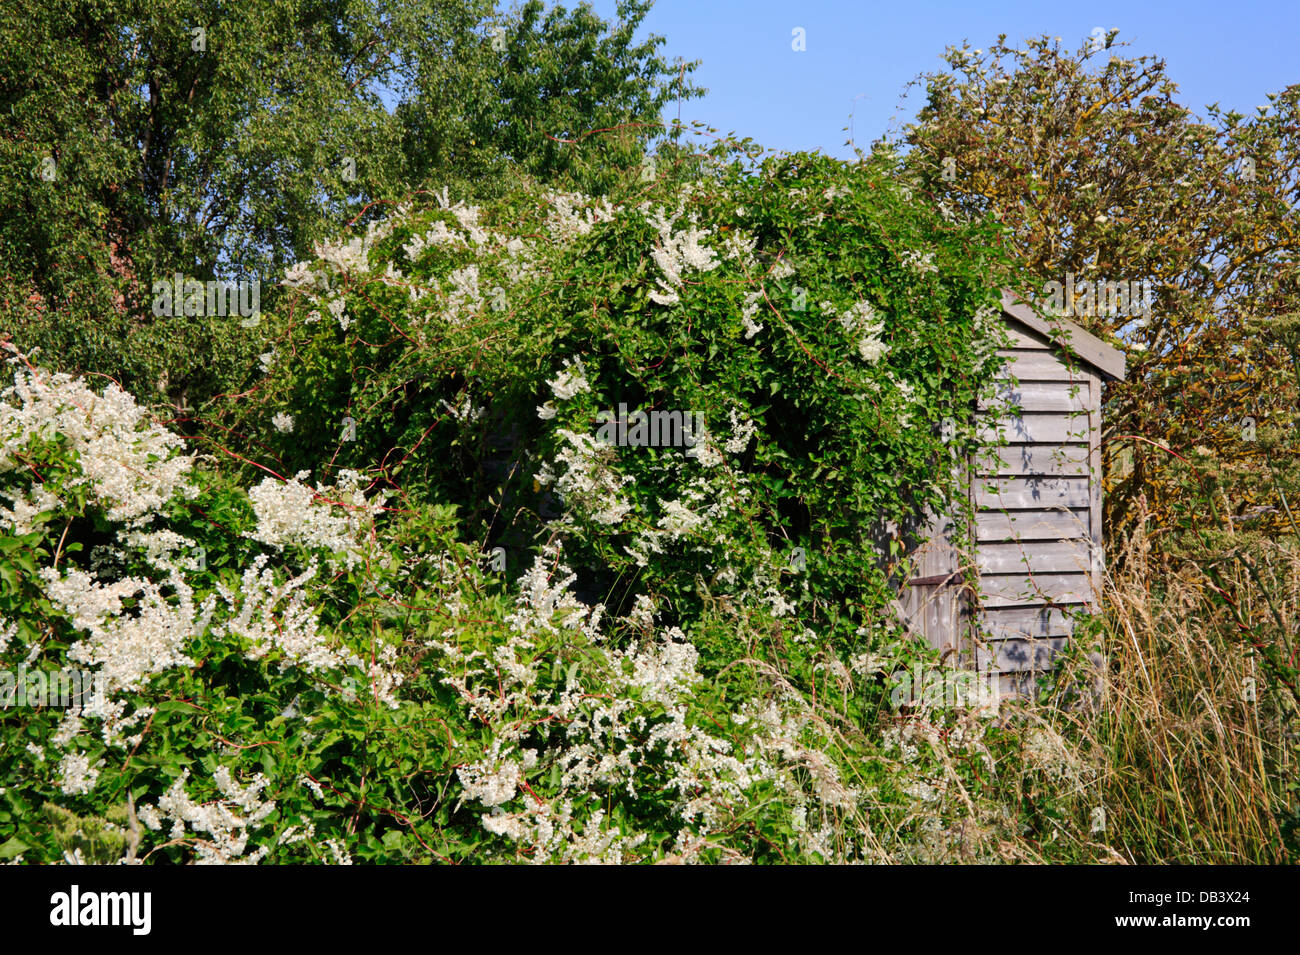 An example of an invasive Russian vine partly covering a wooden shed. - Stock Image